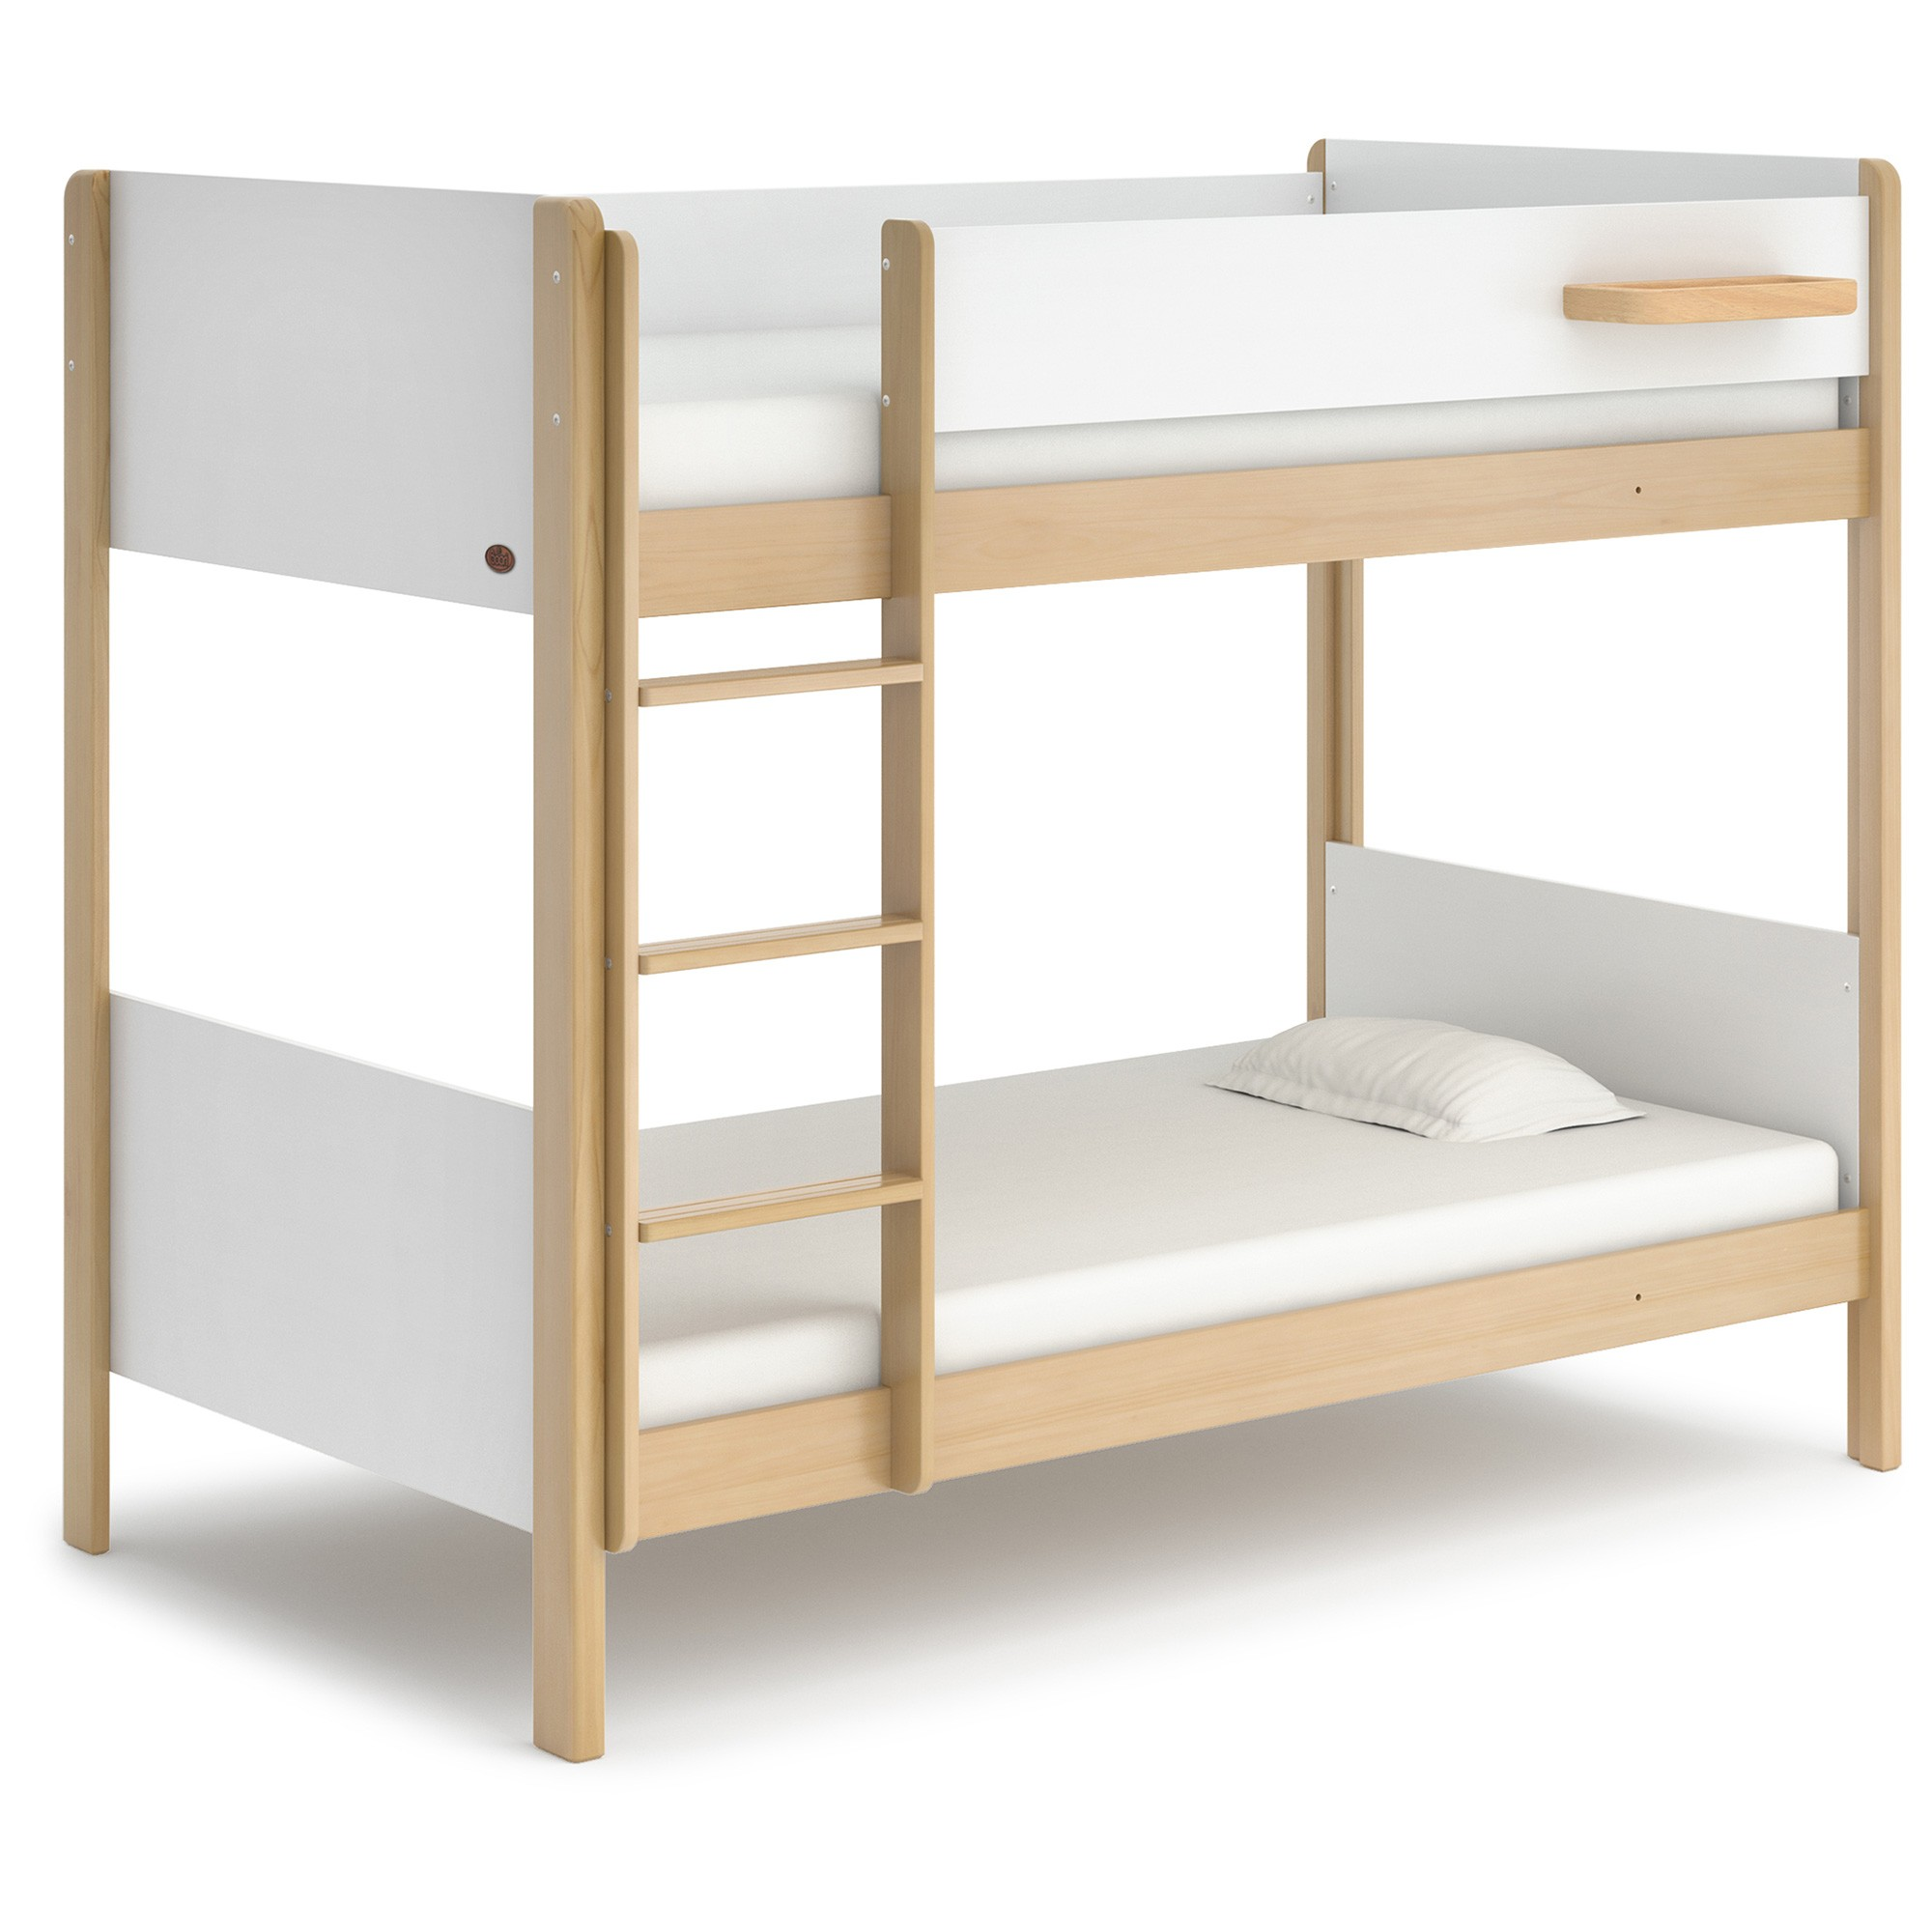 Boori Natty Wooden Bunk Bed, King Single, Barley White / Almond